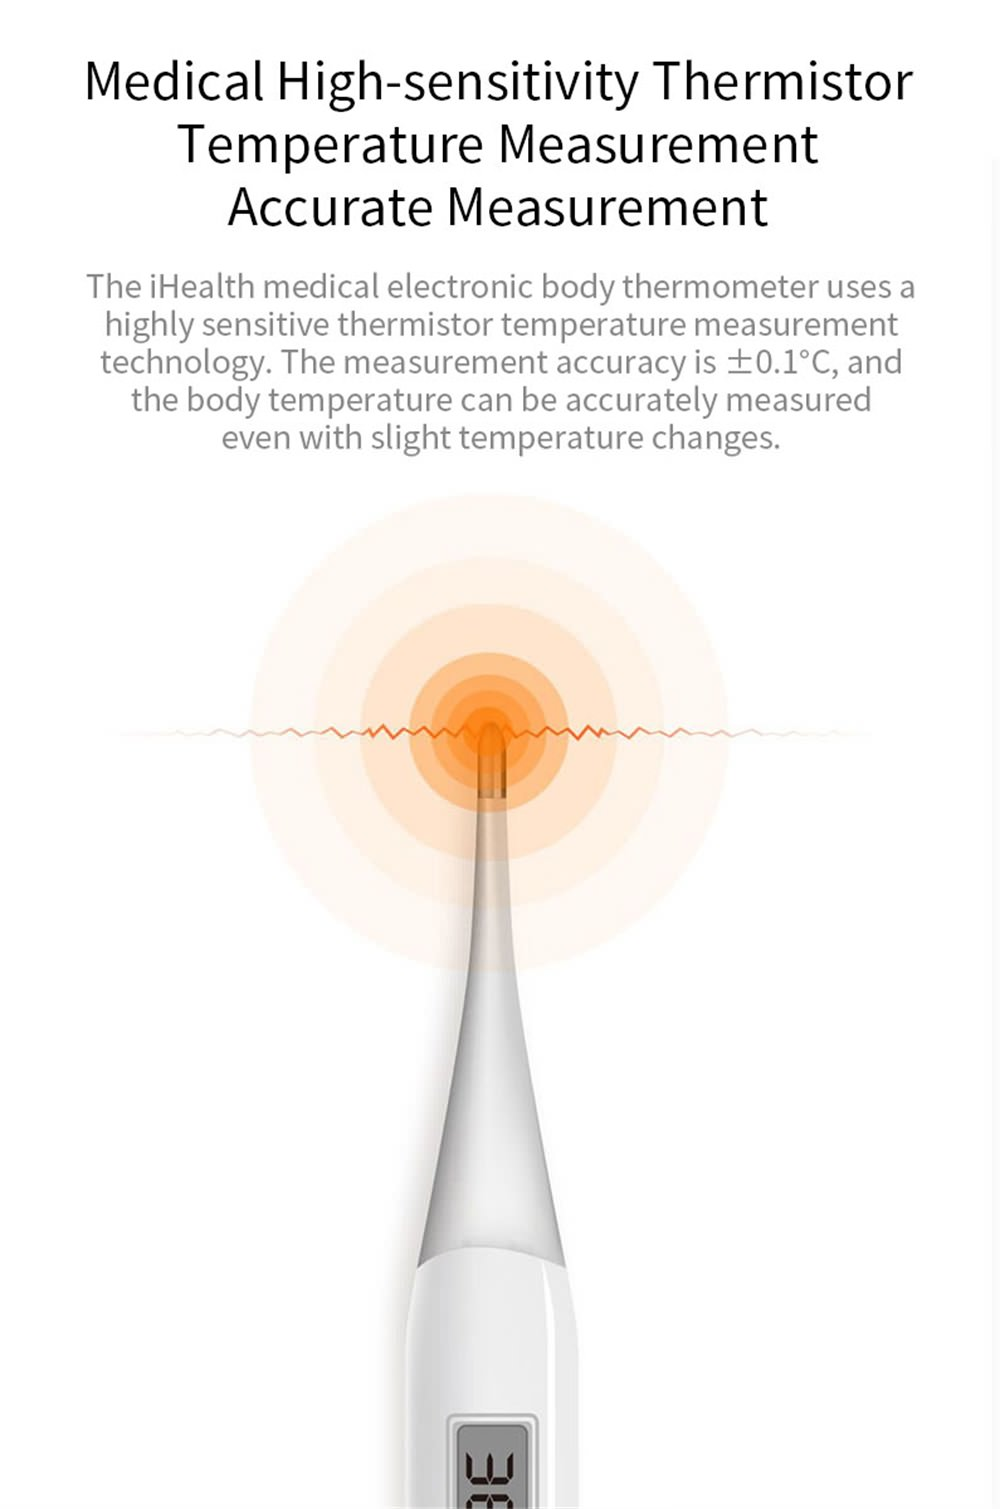 xiaomi ihealth pt-101b thermometer online